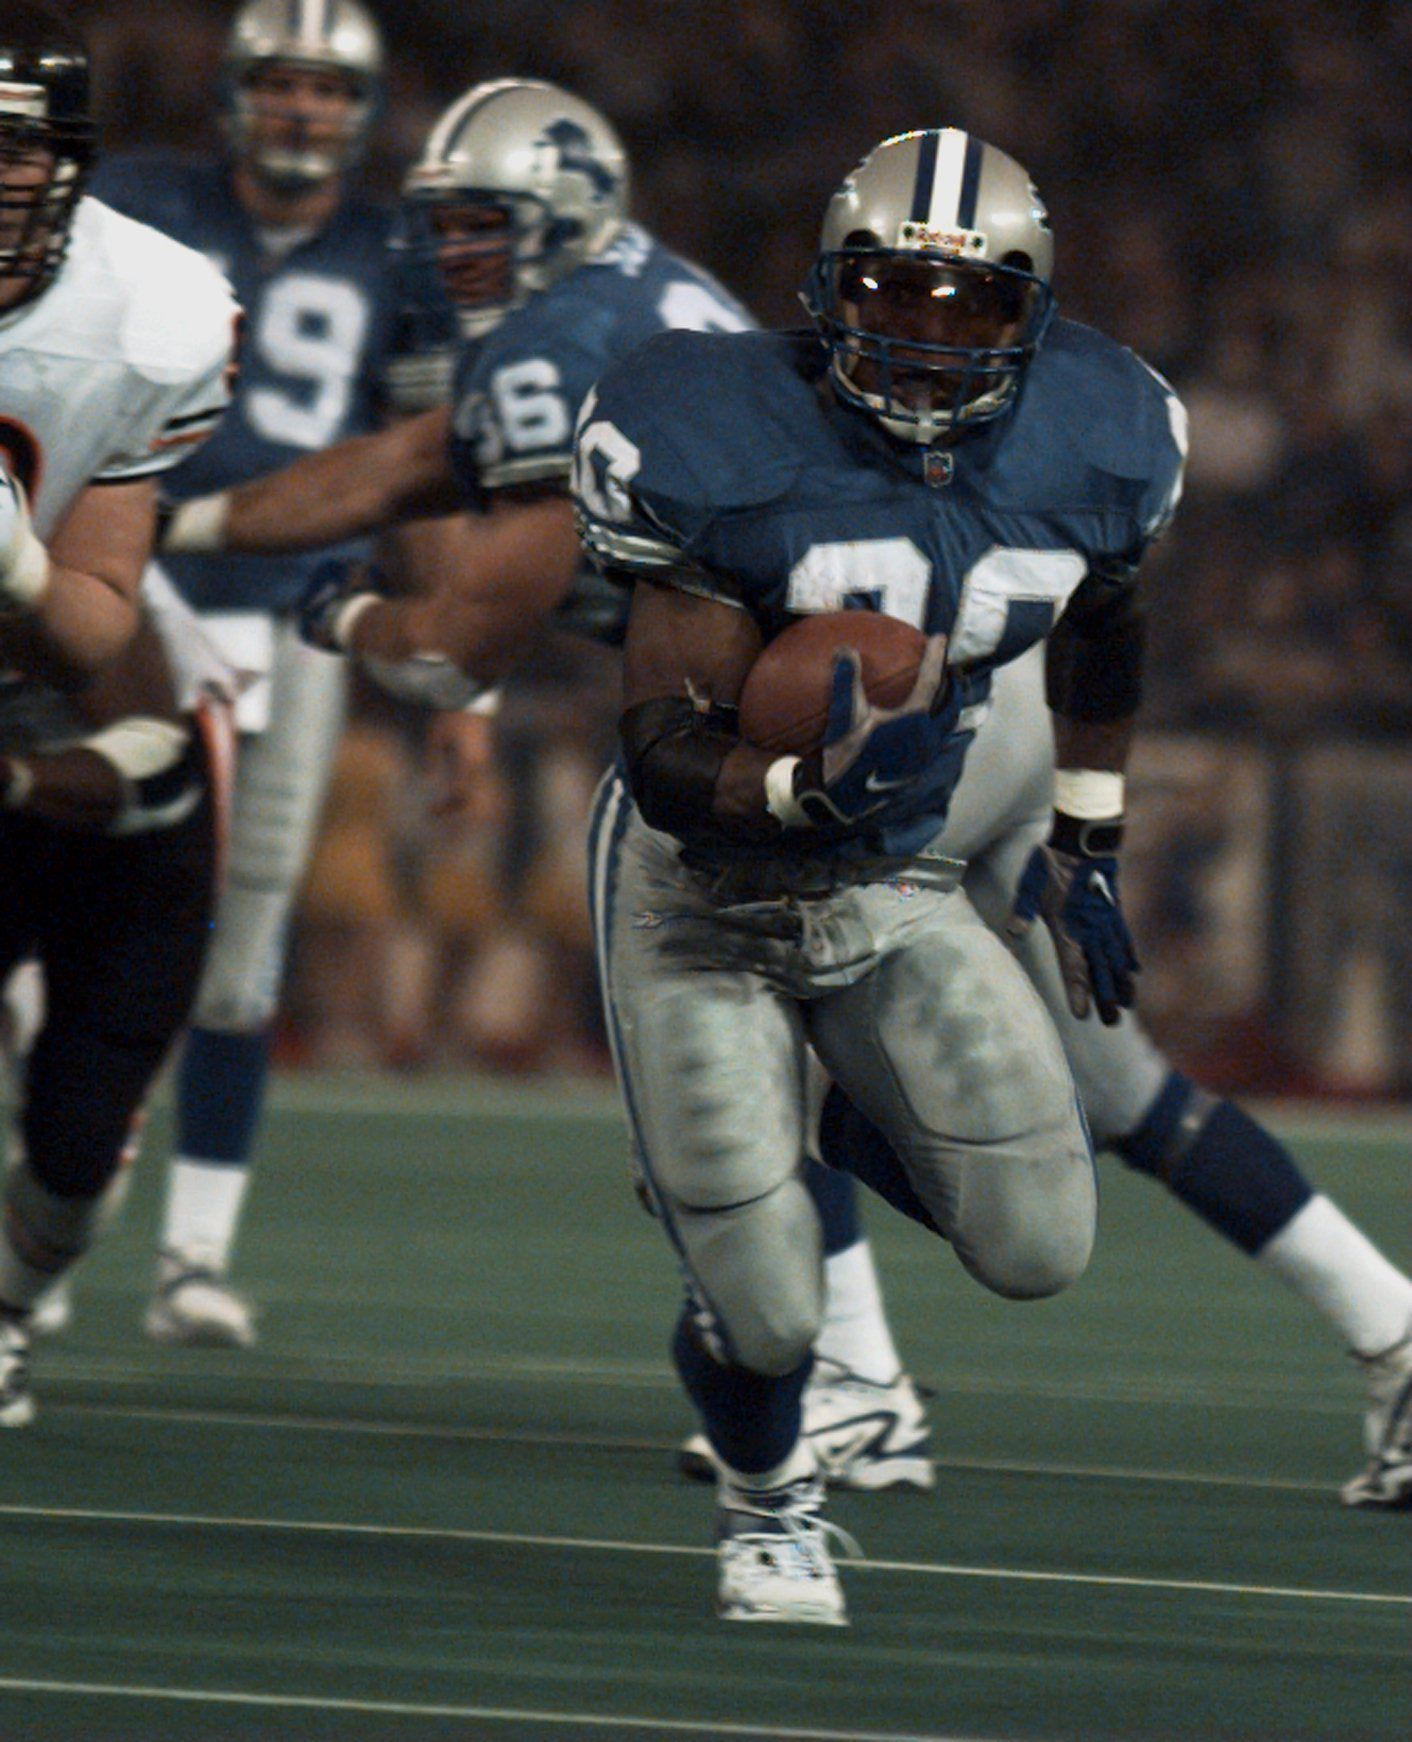 Barry Sanders rushed for 167 yards and three touchdowns against the Bears on Thanksgiving in 1997.